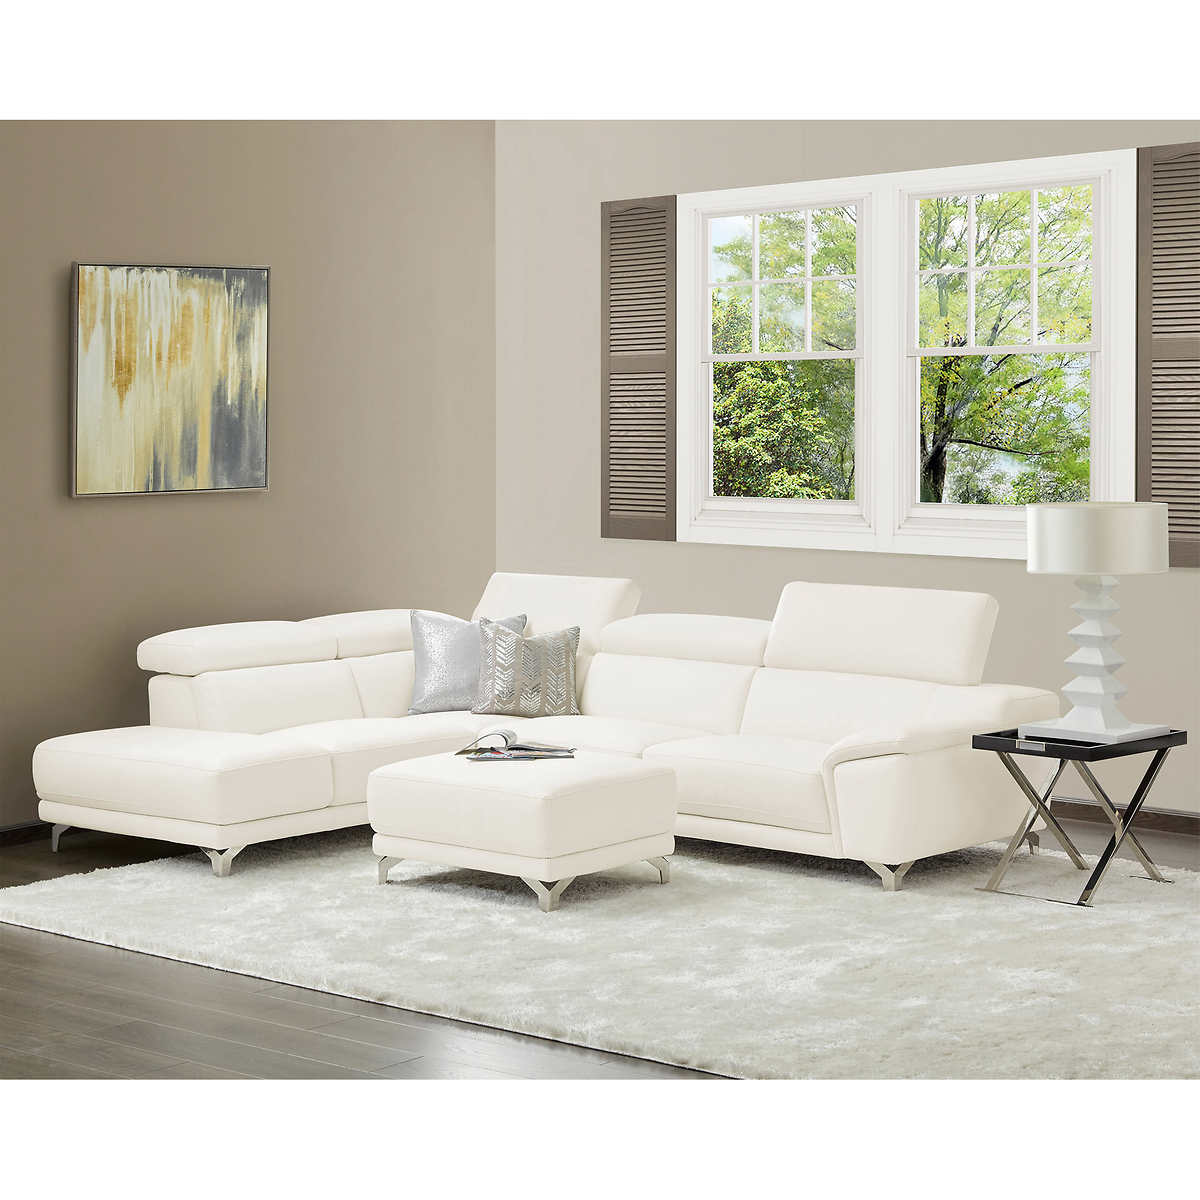 sectionals  chaises  costco - armano white left hand facing living room sectional with ottoman